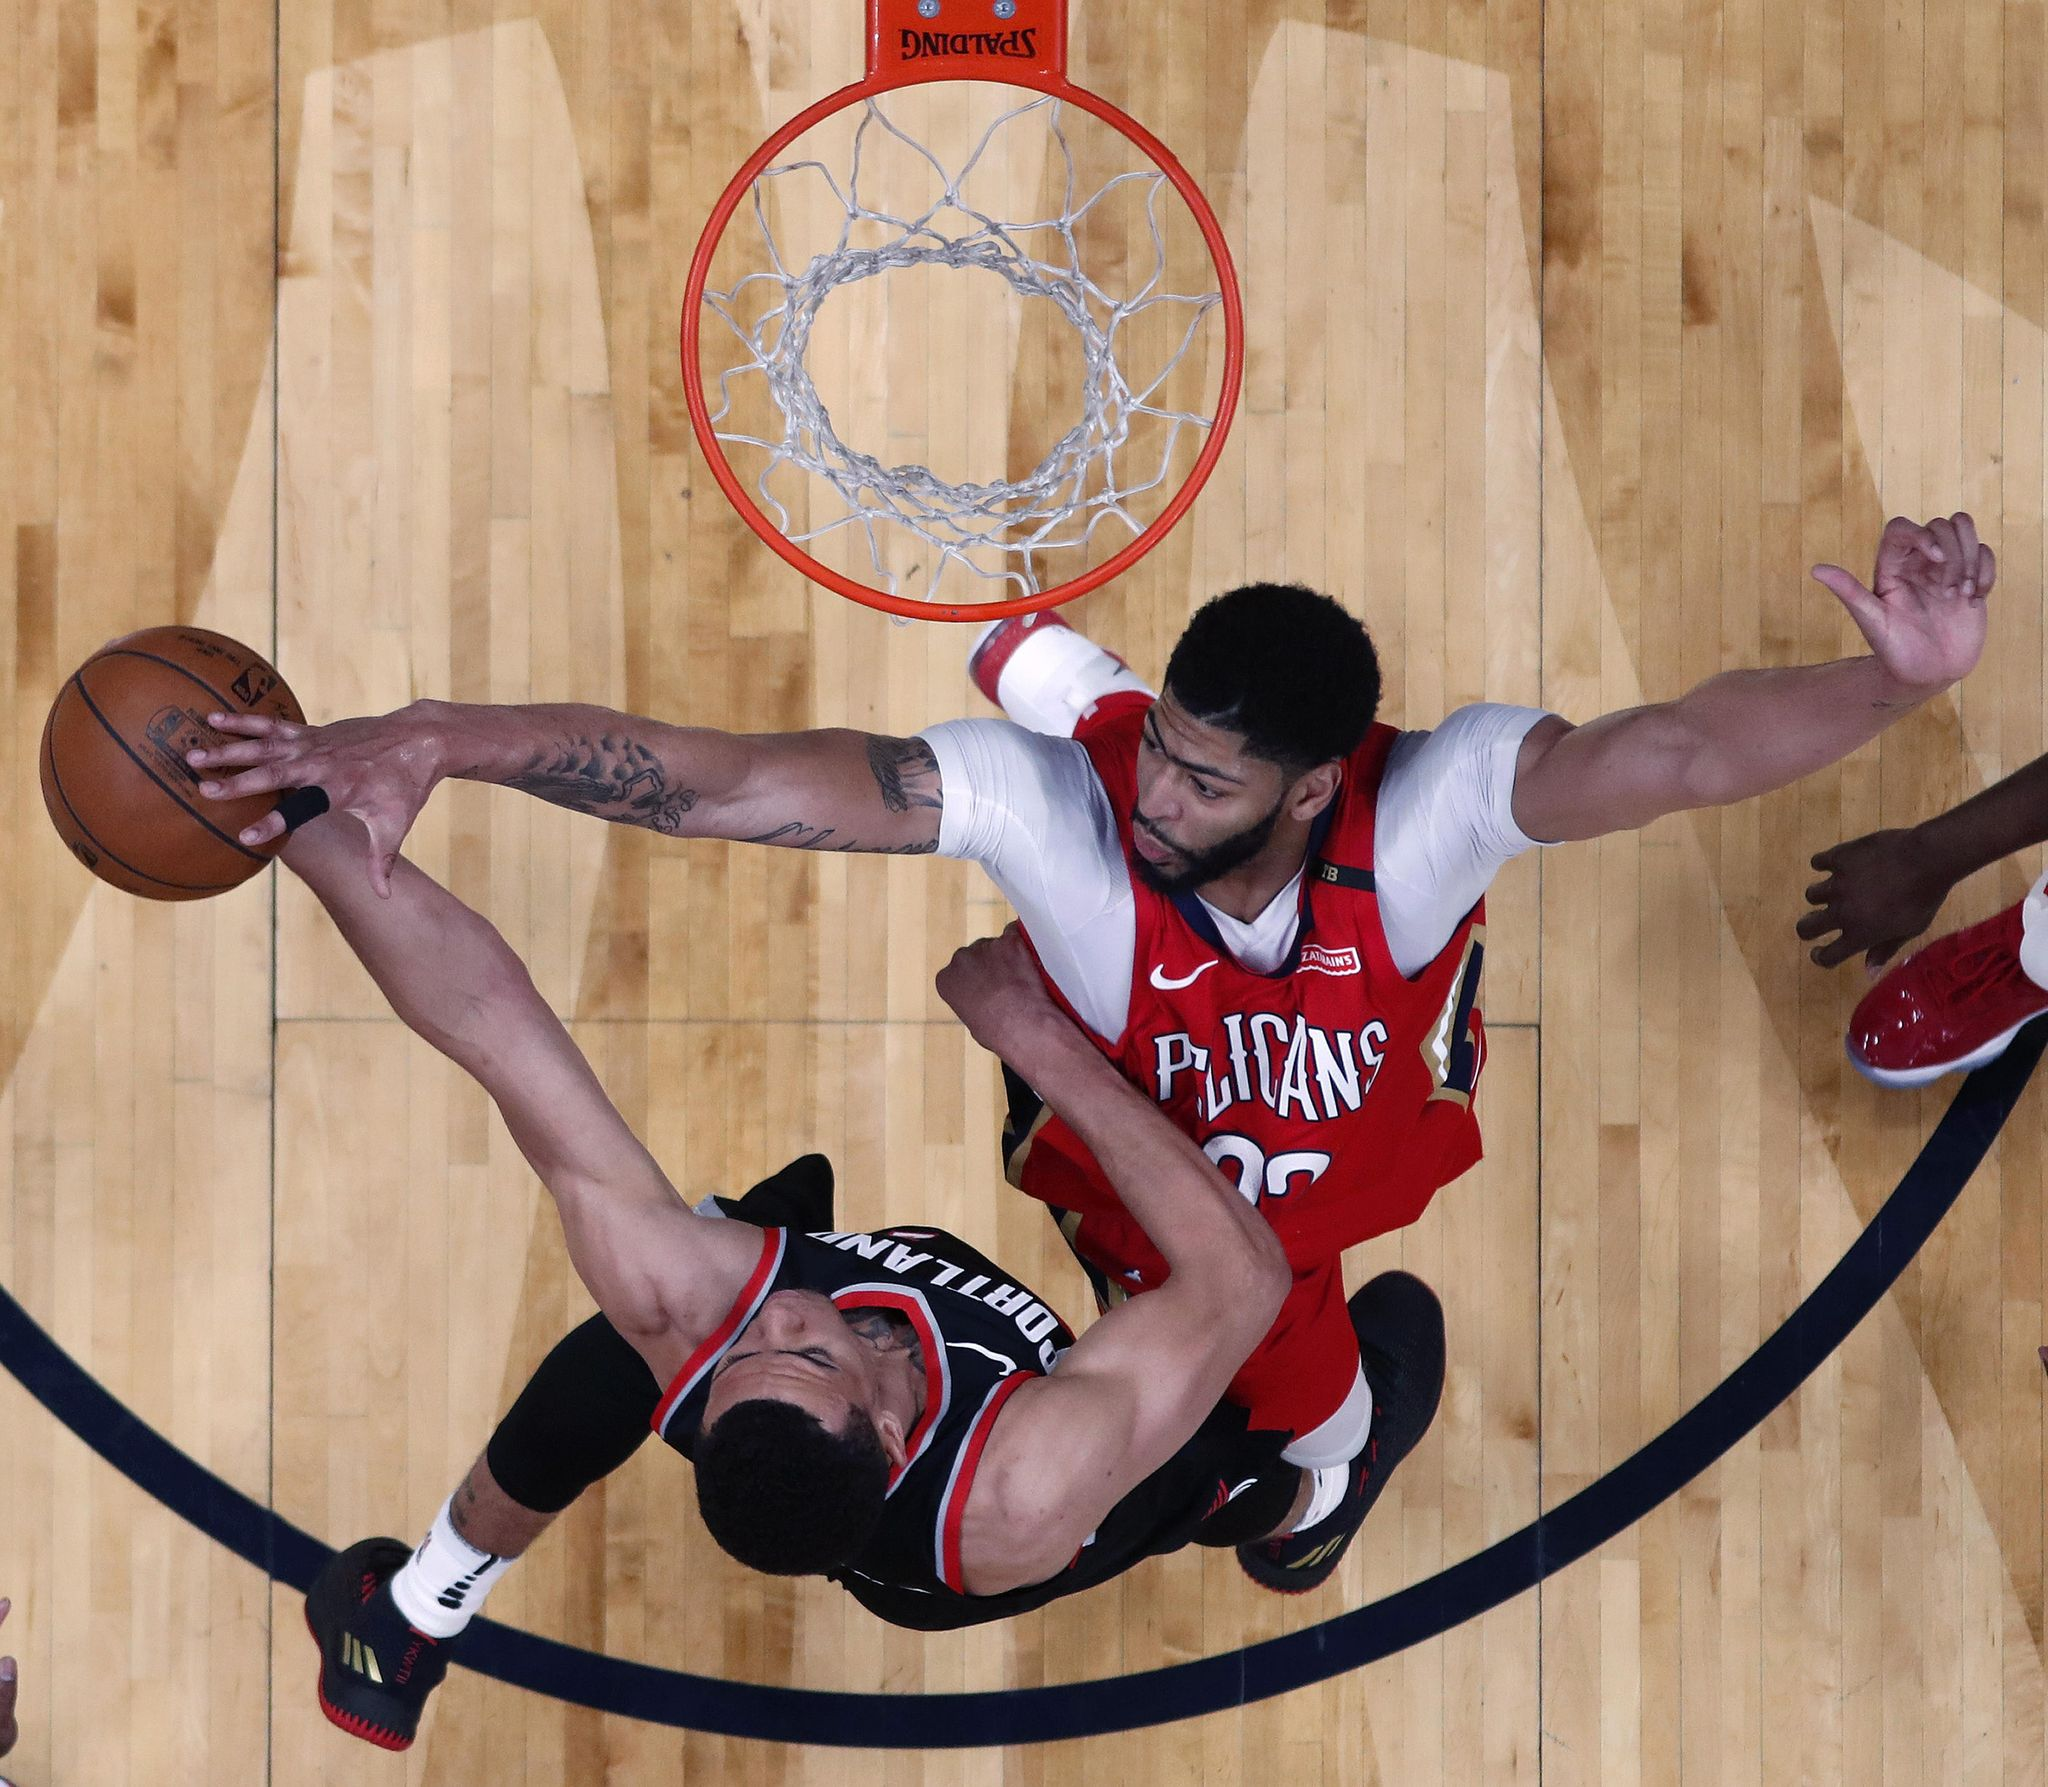 Trail_blazers_pelicans_basketball_41317_s2048x1787